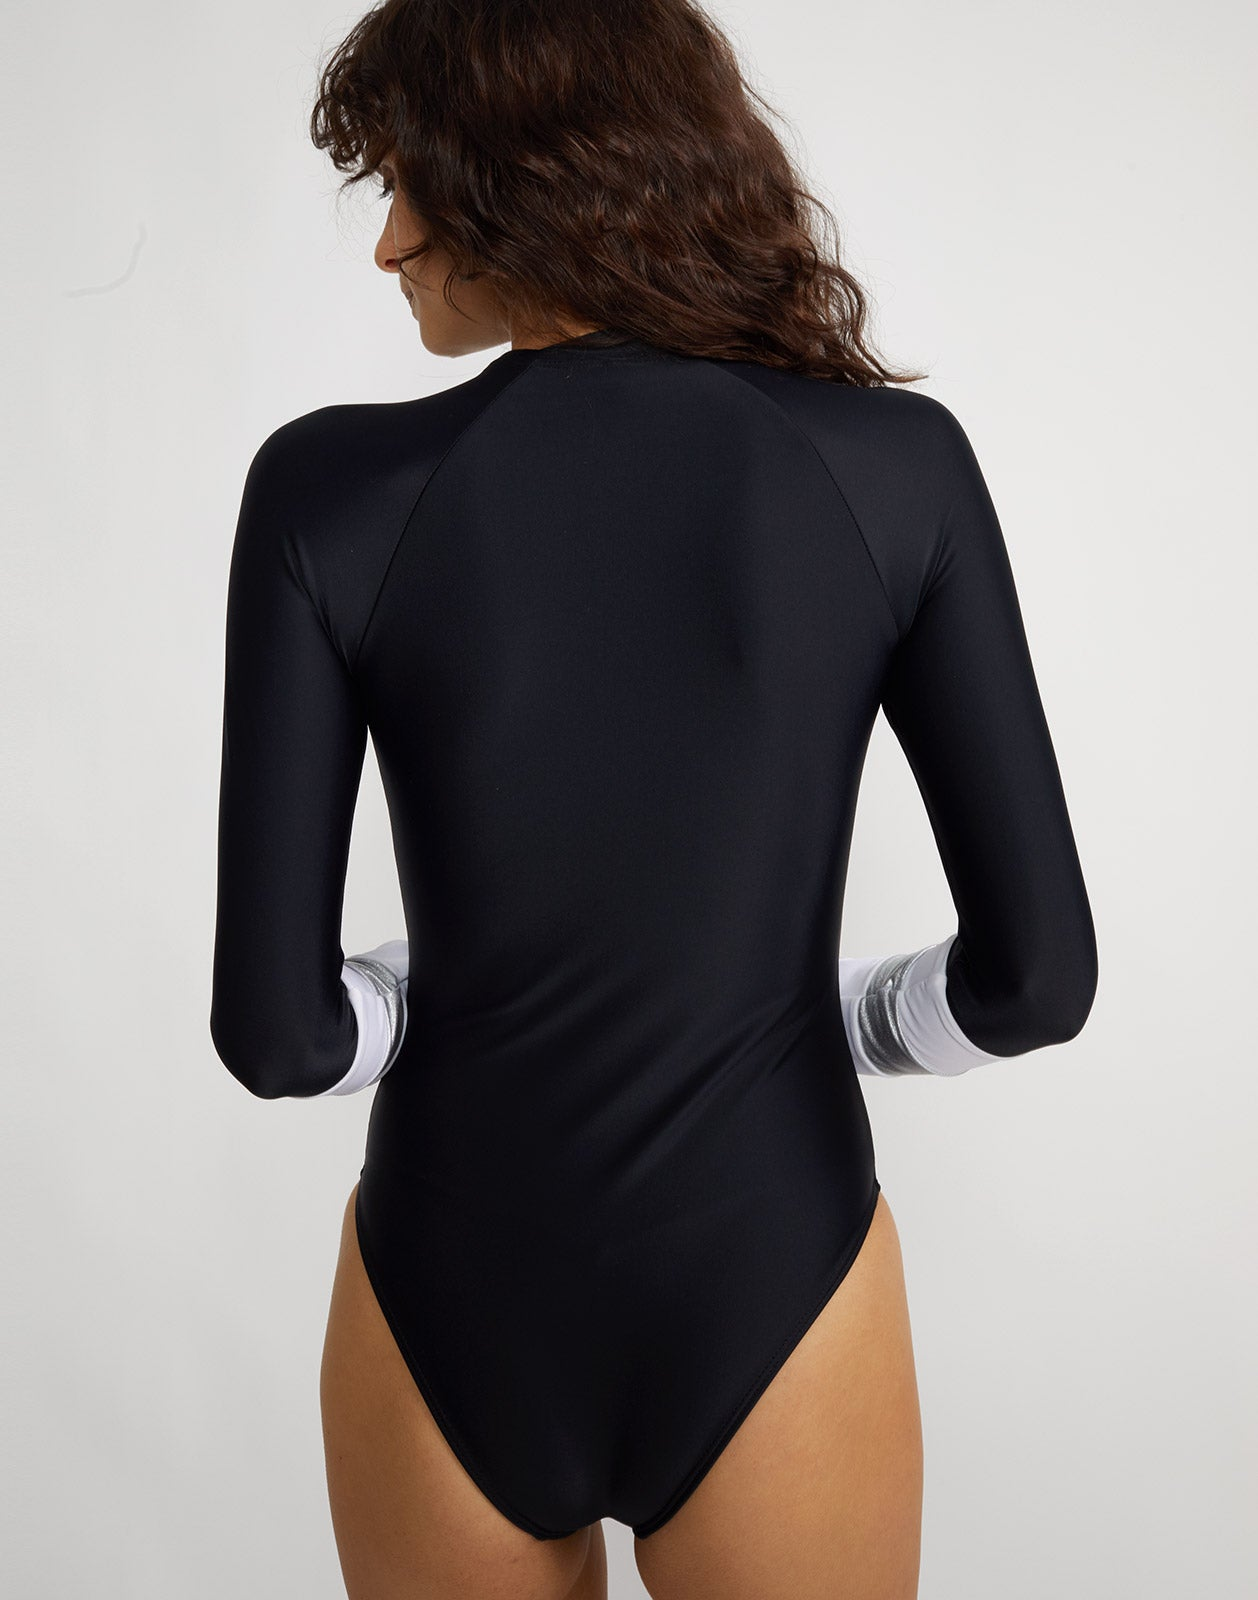 Back view of the Silver stripe Hepburn surfsuit.